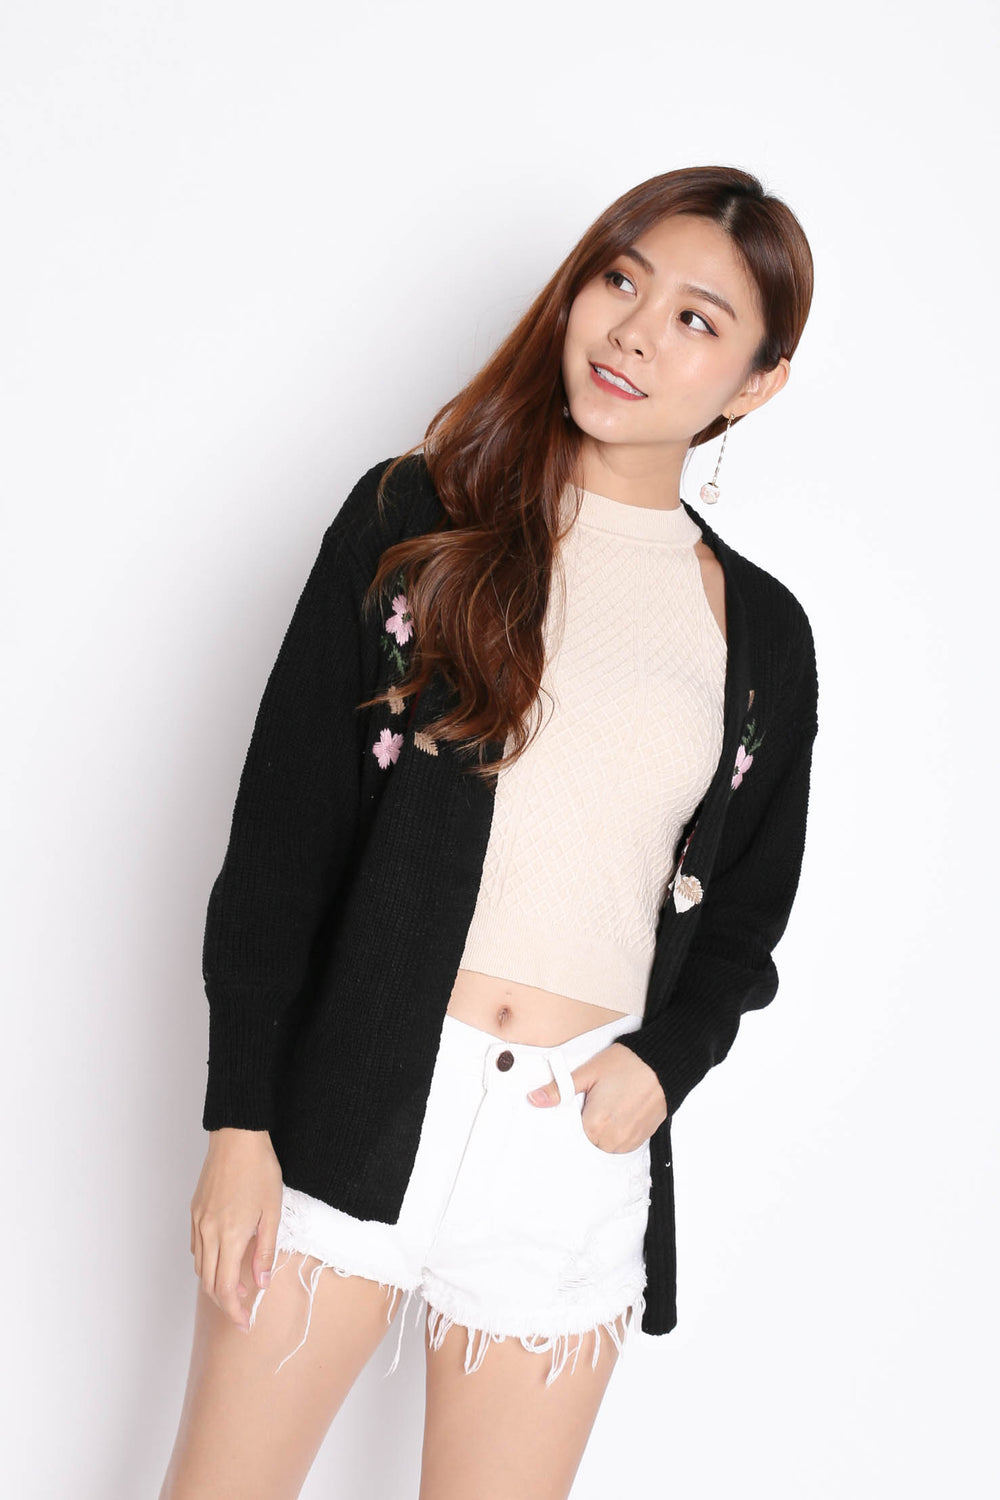 DILYS FLORAL EMBROIDERY CARDIGAN IN BLACK